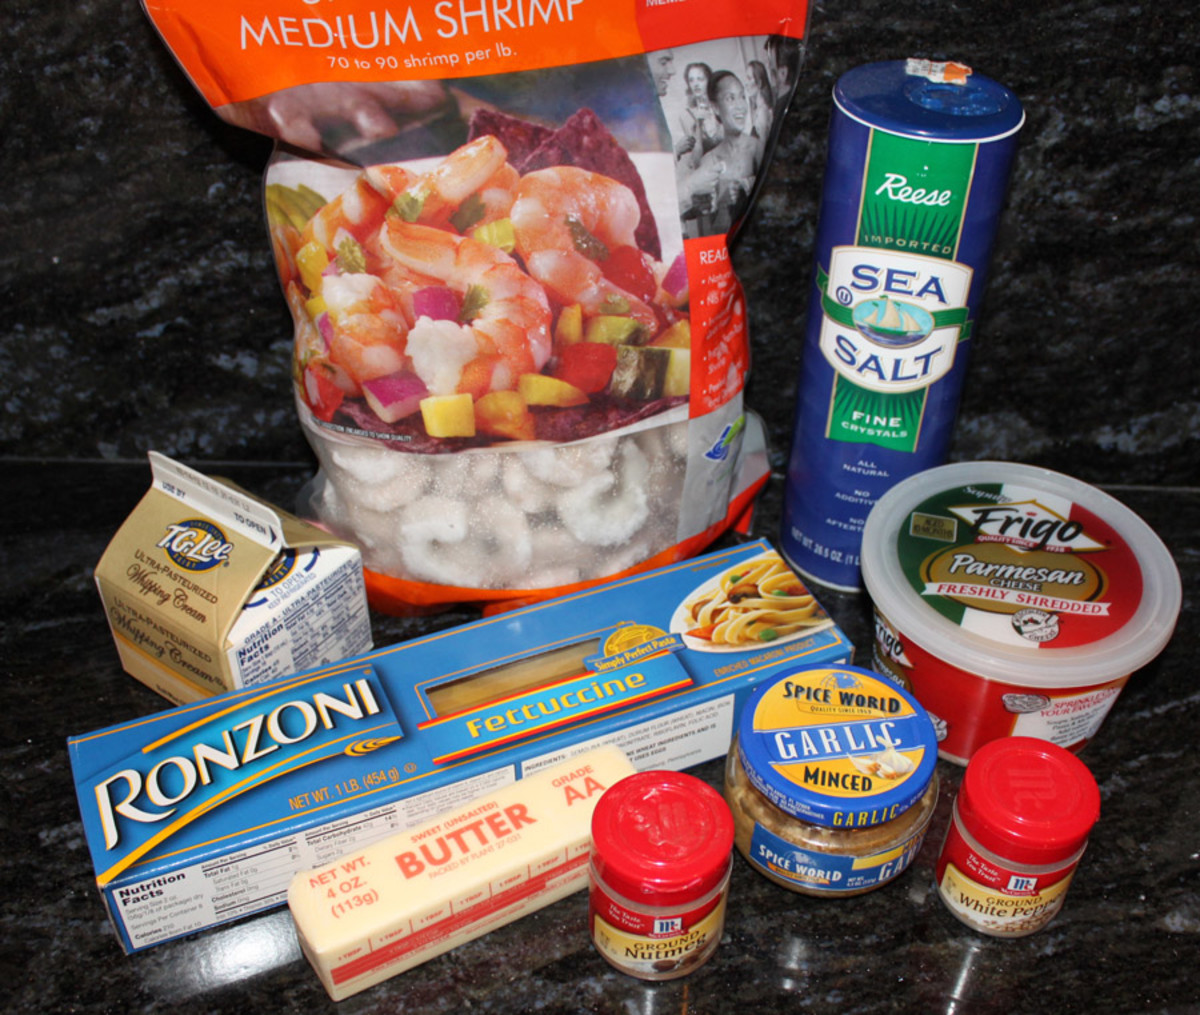 All the ingredients for a great dish of Shrimp Fettuccine Alfredo